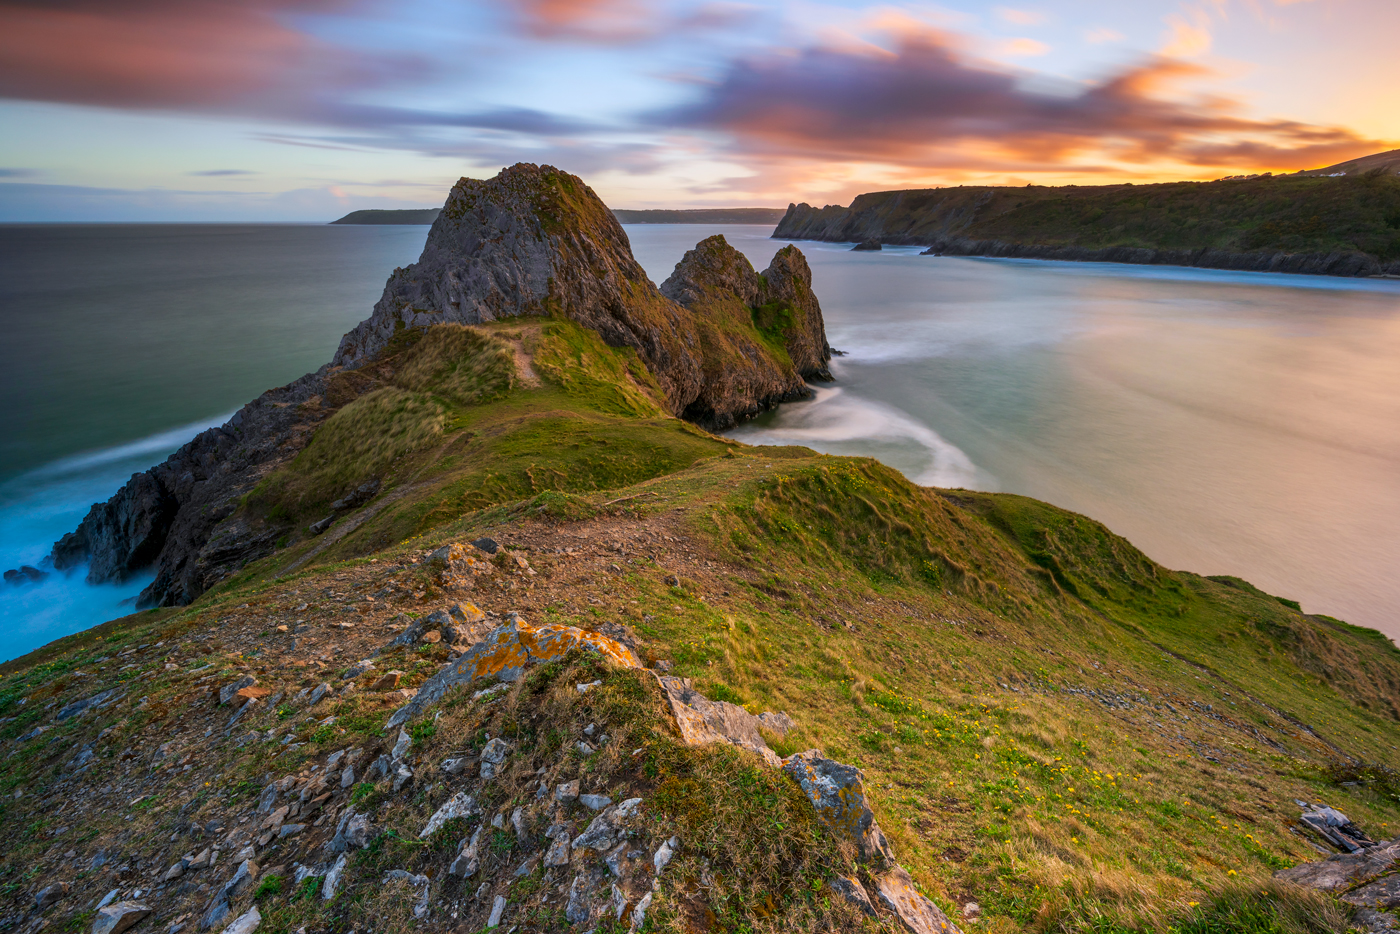 Three Cliffs Bay Gower Peninsula Wales canvas prints for sale